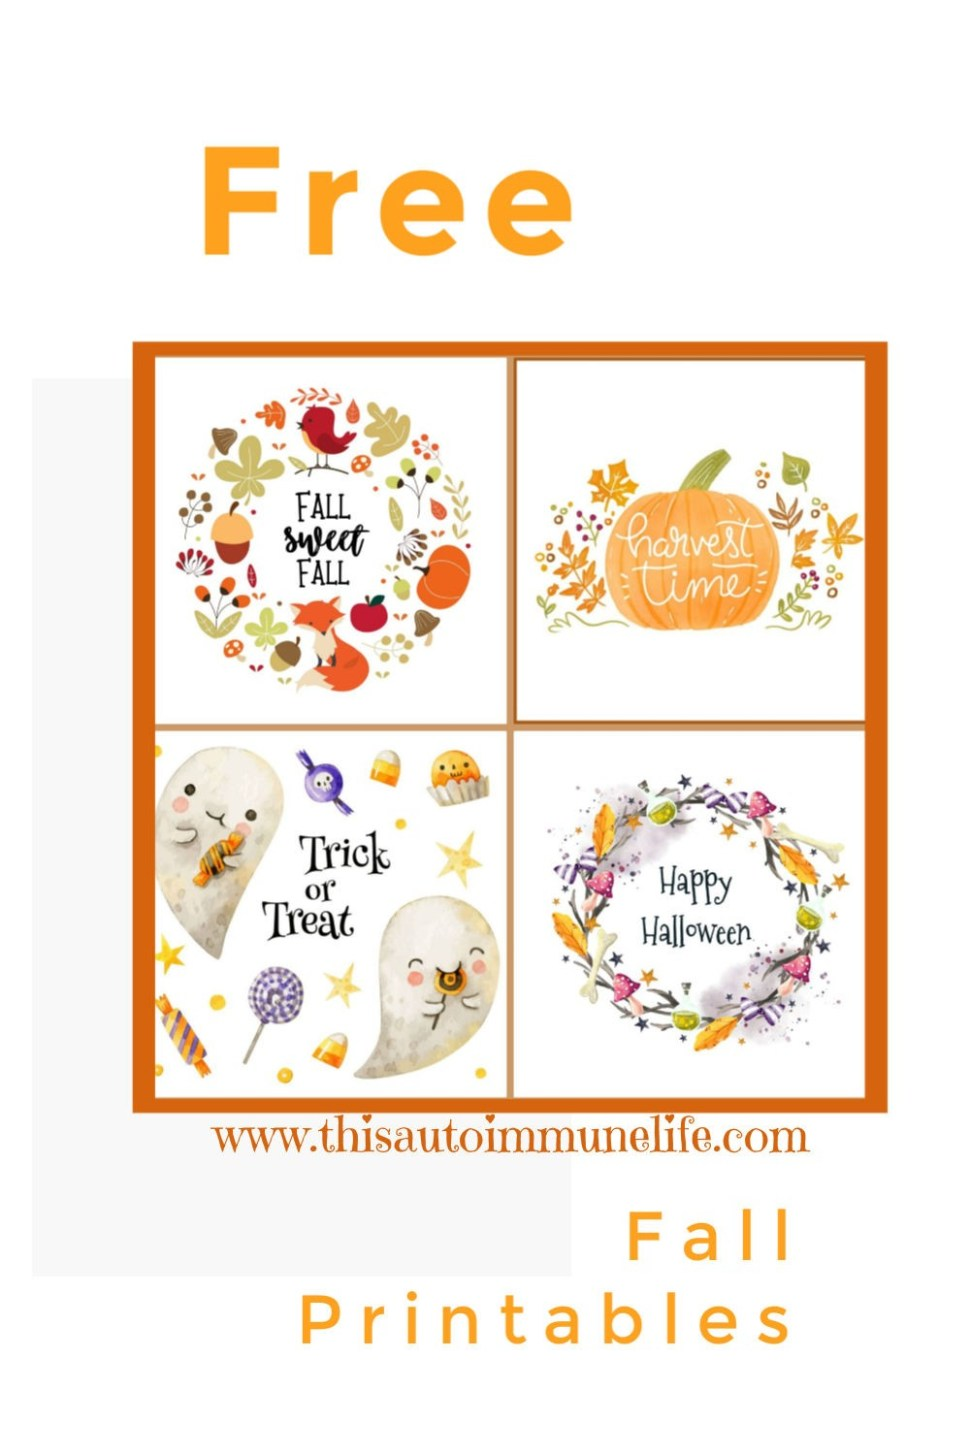 Free Fall & Halloween Printables from www.thisautoimmunelife.com #fallprintables #free #Halloweenprintables